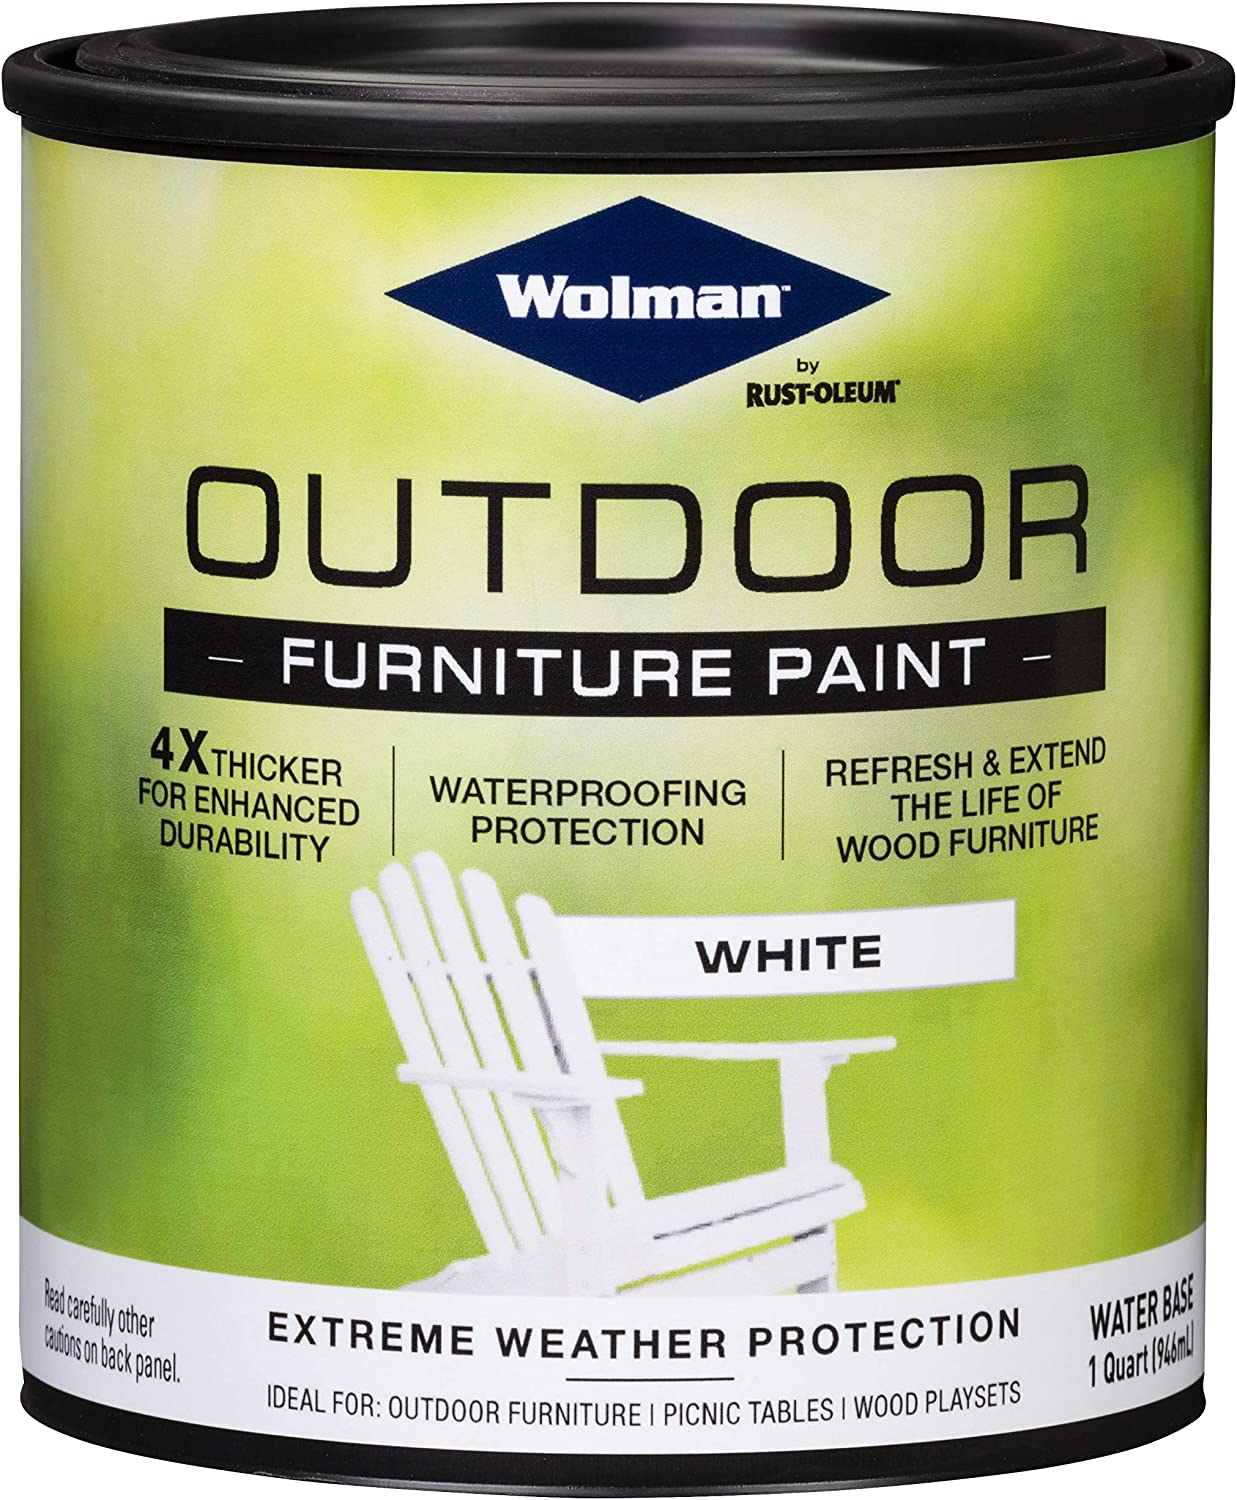 Wolman 360352 Outdoor Furniture Paint, 2 Pack, White